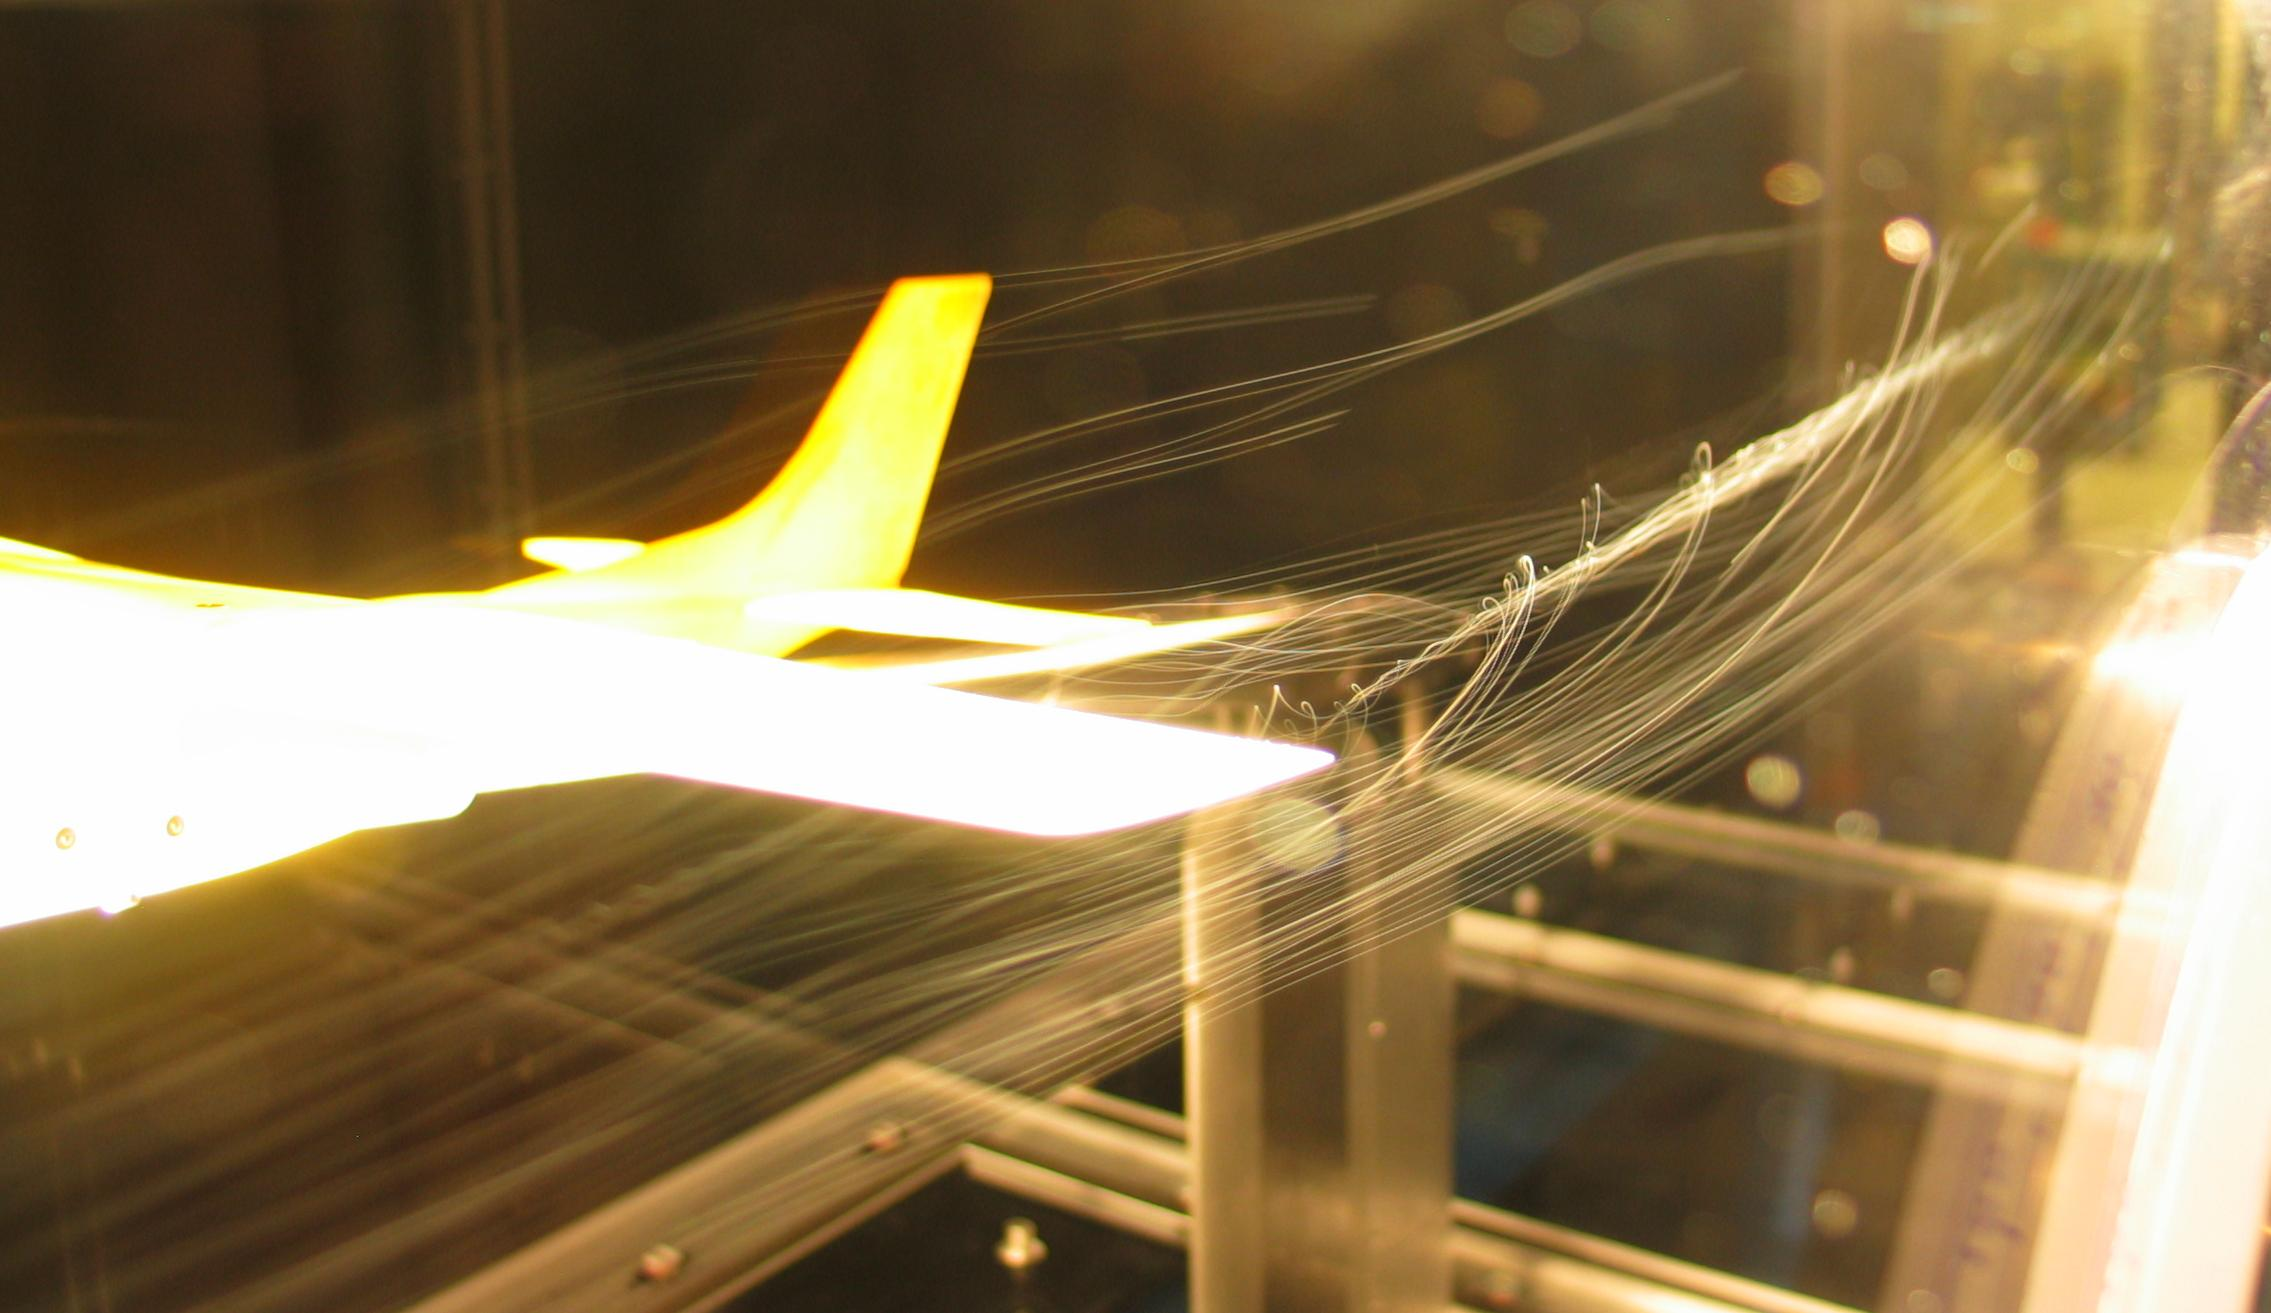 Plane model tested inside a wind tunnel.